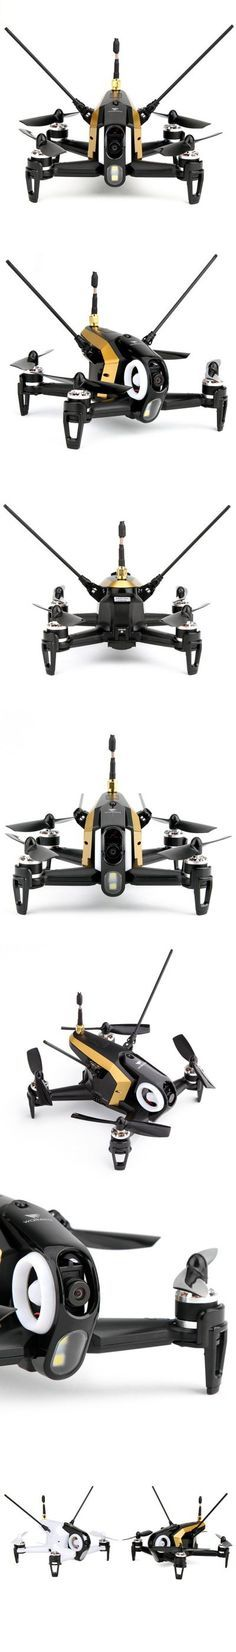 RC Quadcopters | Walkera Rodeo 150 Racing Drone BNF $196.00 - Looking for a 'Quadcopter'? Get your first quadcopter today. TOP Rated Quadcopters has Beginner, Racing, Aerial Photography, Auto Follow Quadcopters and FPV Goggles, plus video reviews and more. => http://topratedquadcopters.com <== #electronics #technology #quadcopters #drones #autofollowdrones #dronephotography #dronegear #racingdrones #beginnerdrones